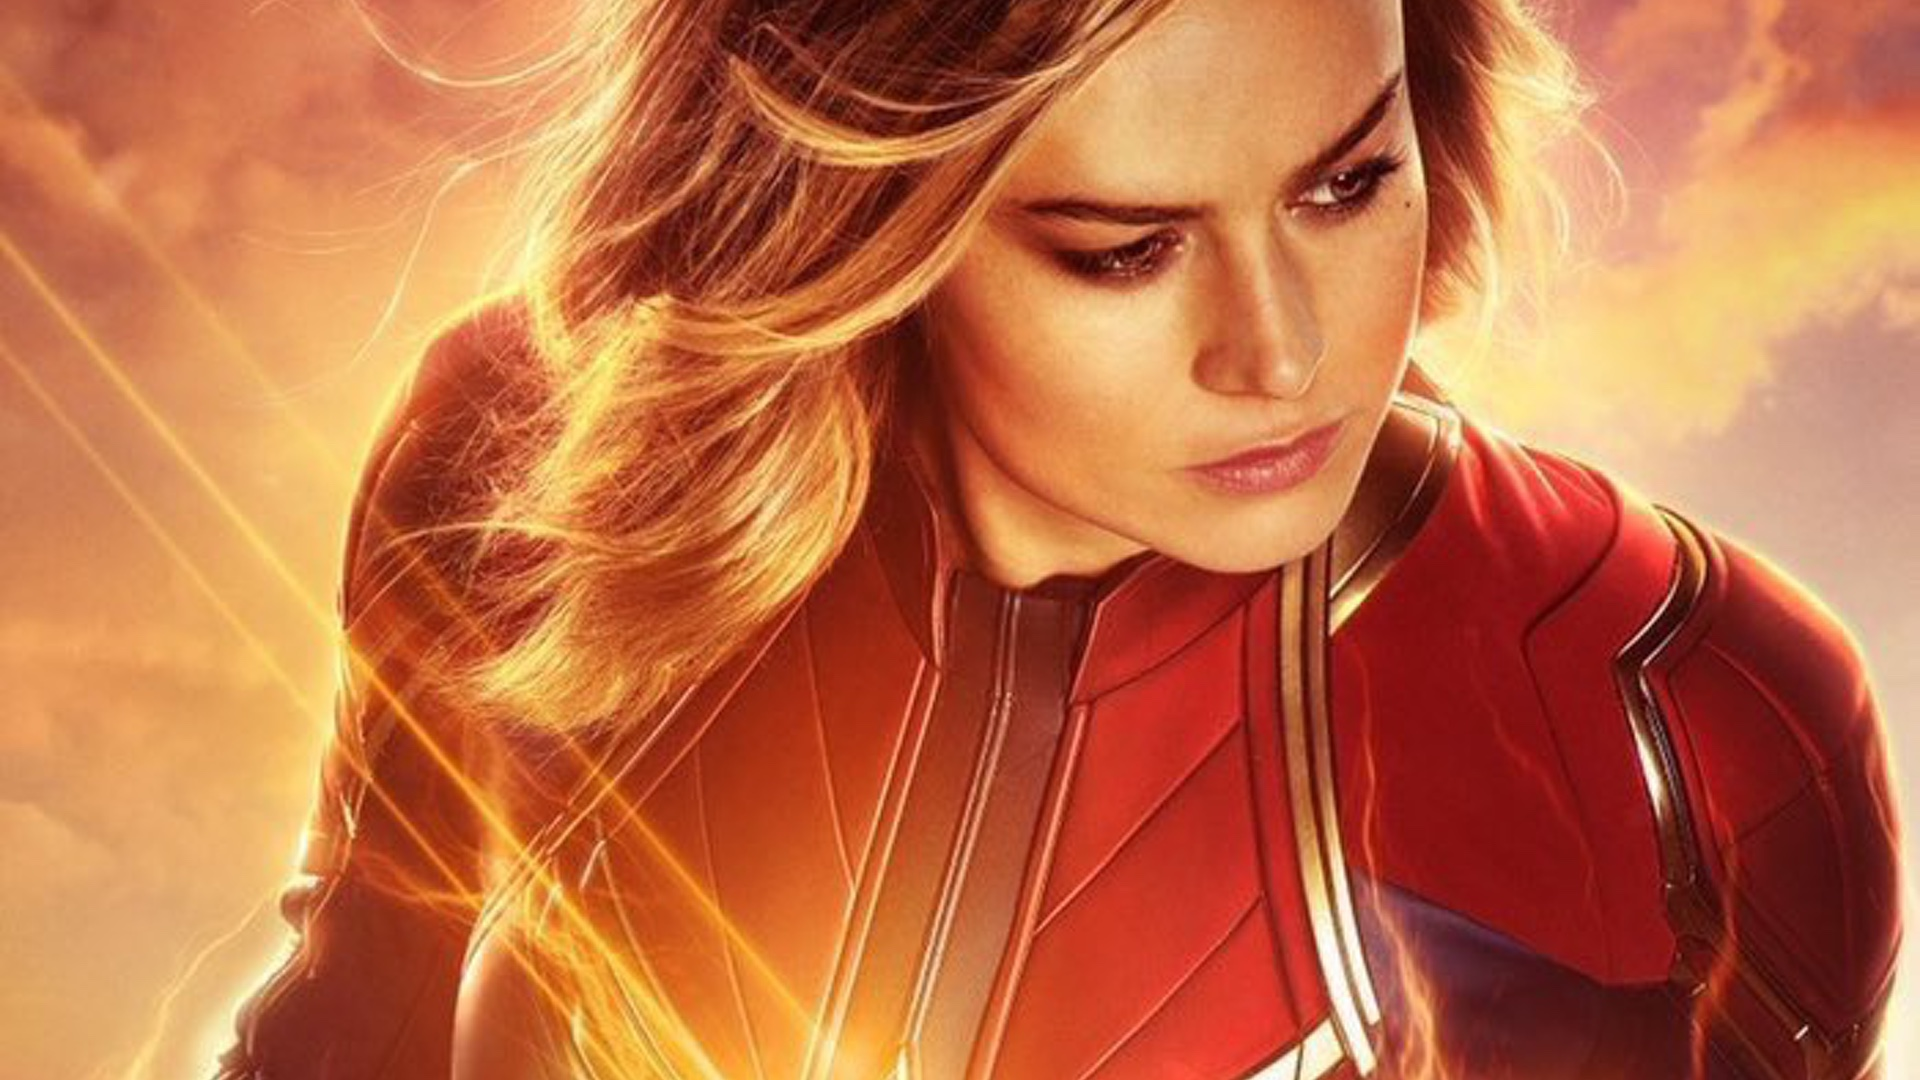 captain marvel directors explain that the film was heavily inspired